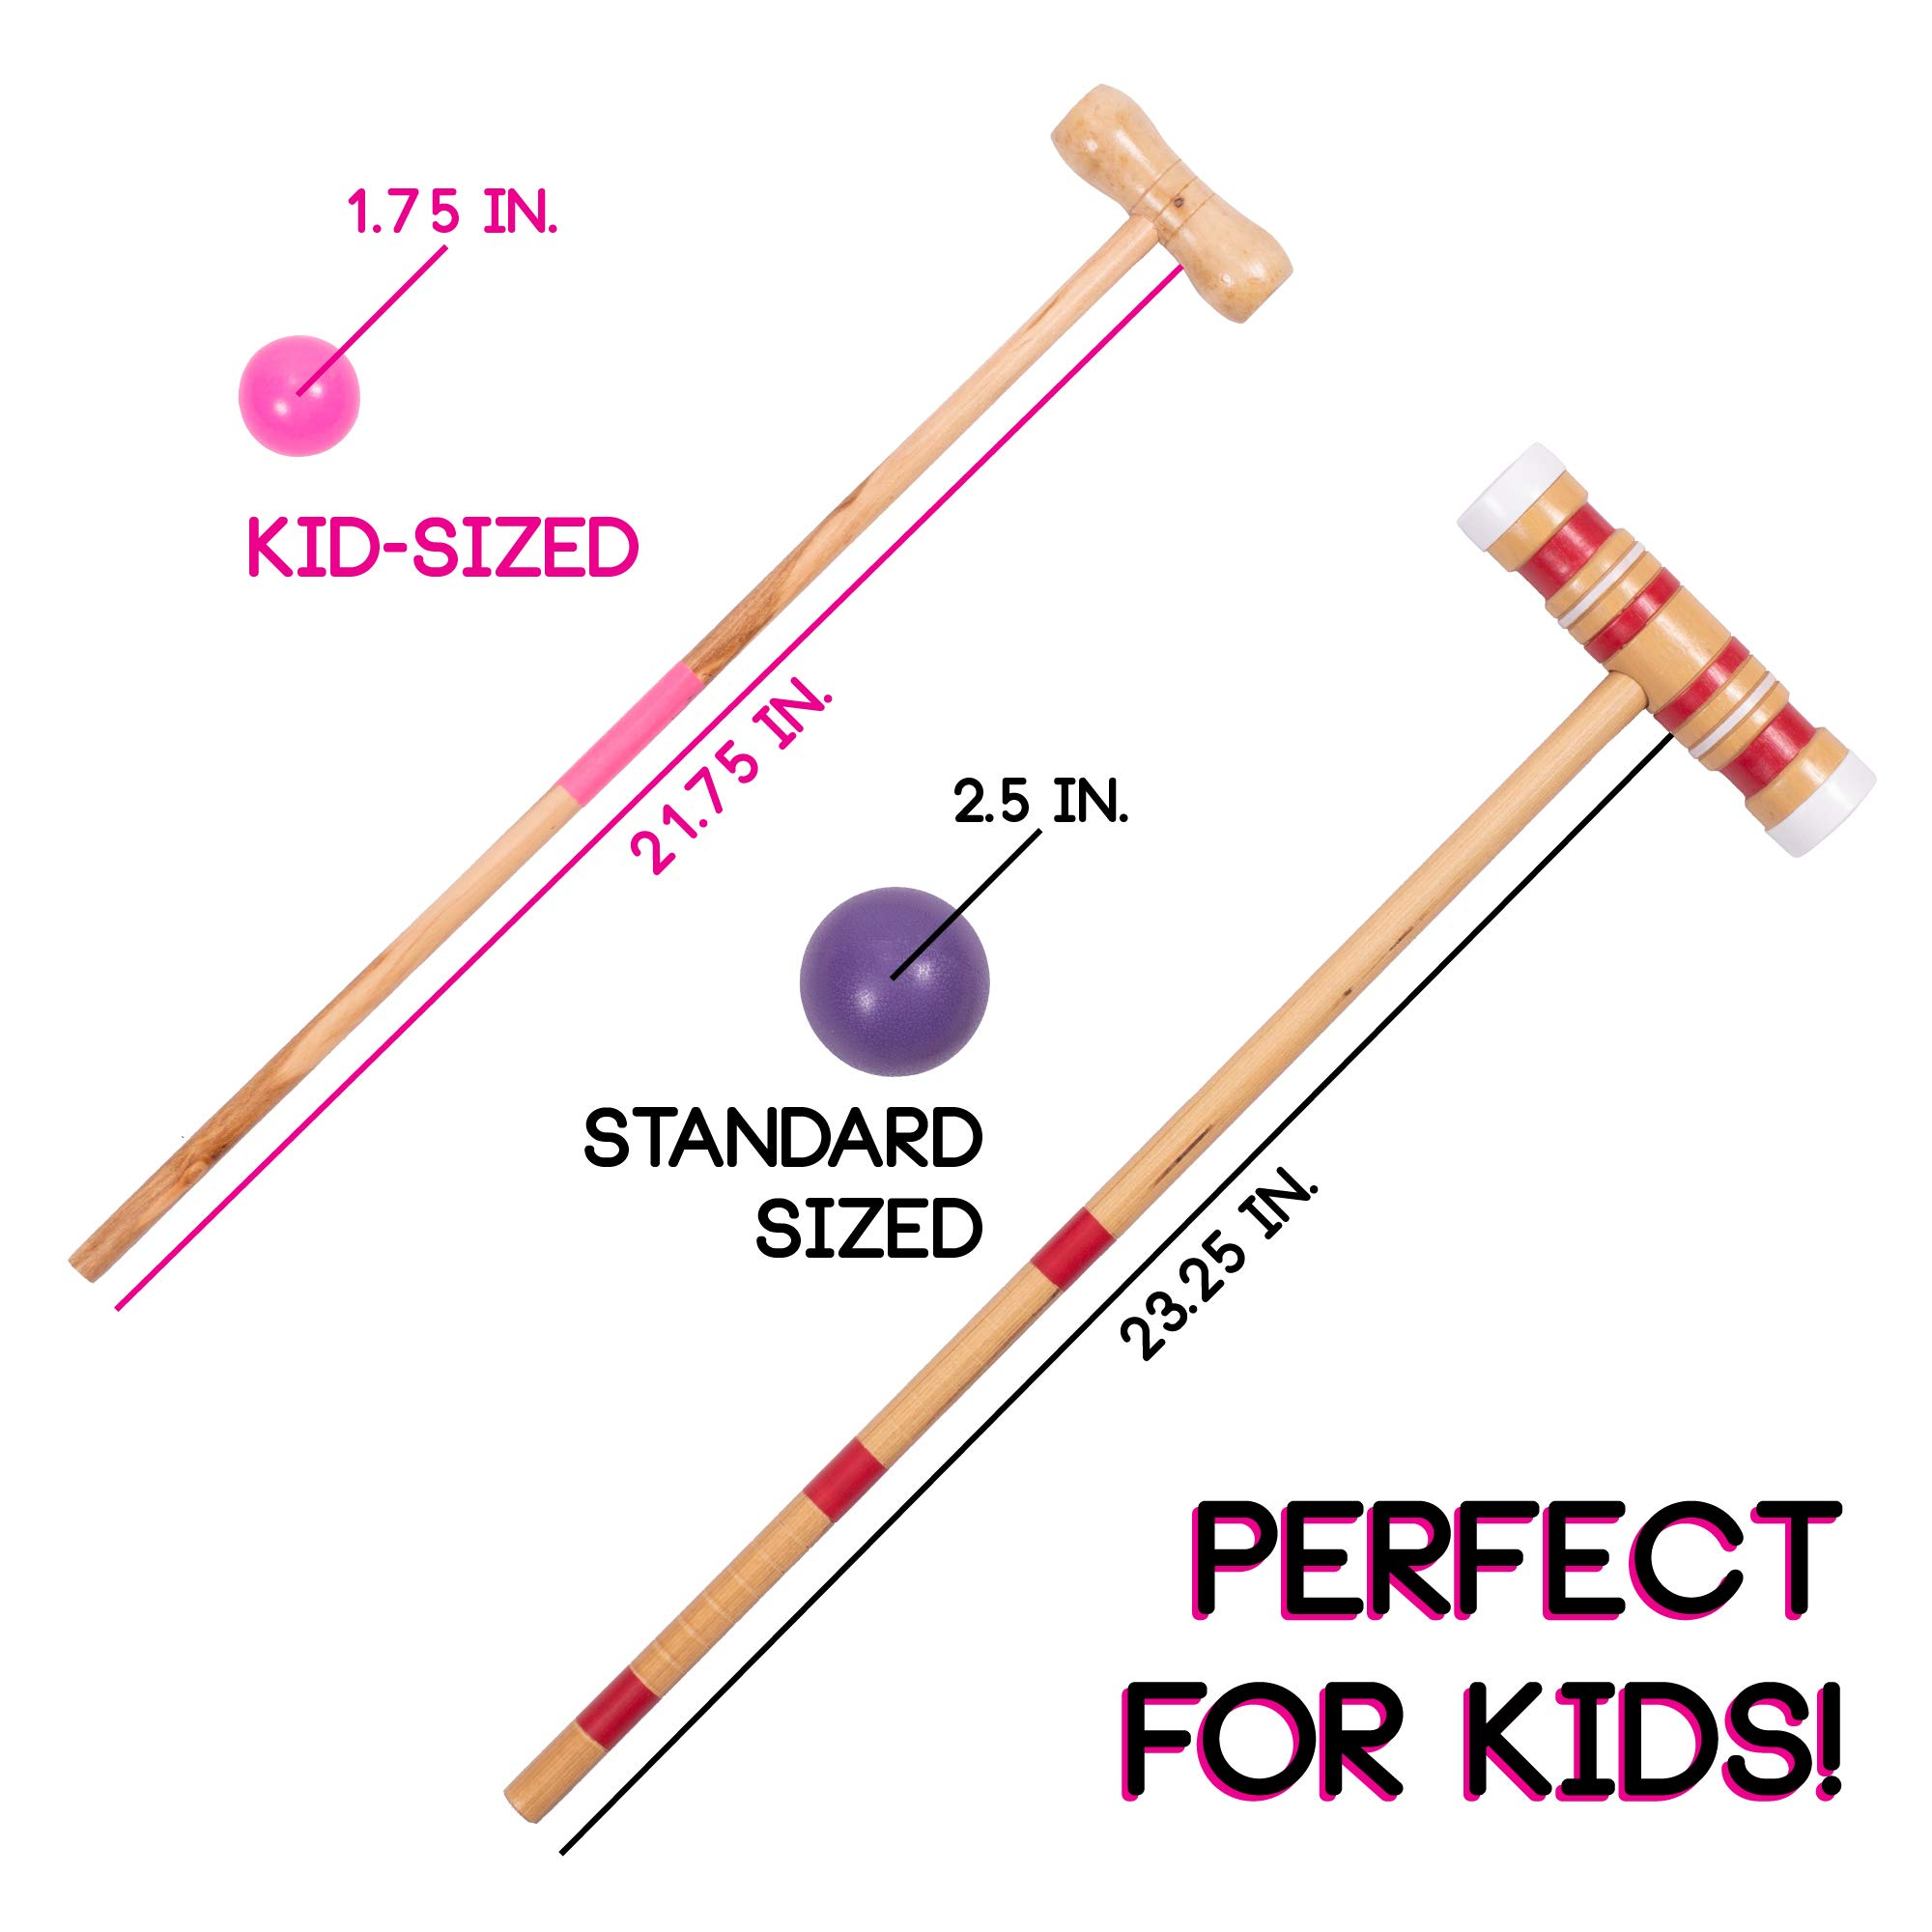 Kids Croquet Set for 4-Players | Classic Outdoor Lawn Game for Children | Great for Birthday Parties, Picnics, BBQs, and More | Comes with Mallets, Balls, Wickets, and a Carrying Bag for Portability by Crown Sporting Goods (Image #6)